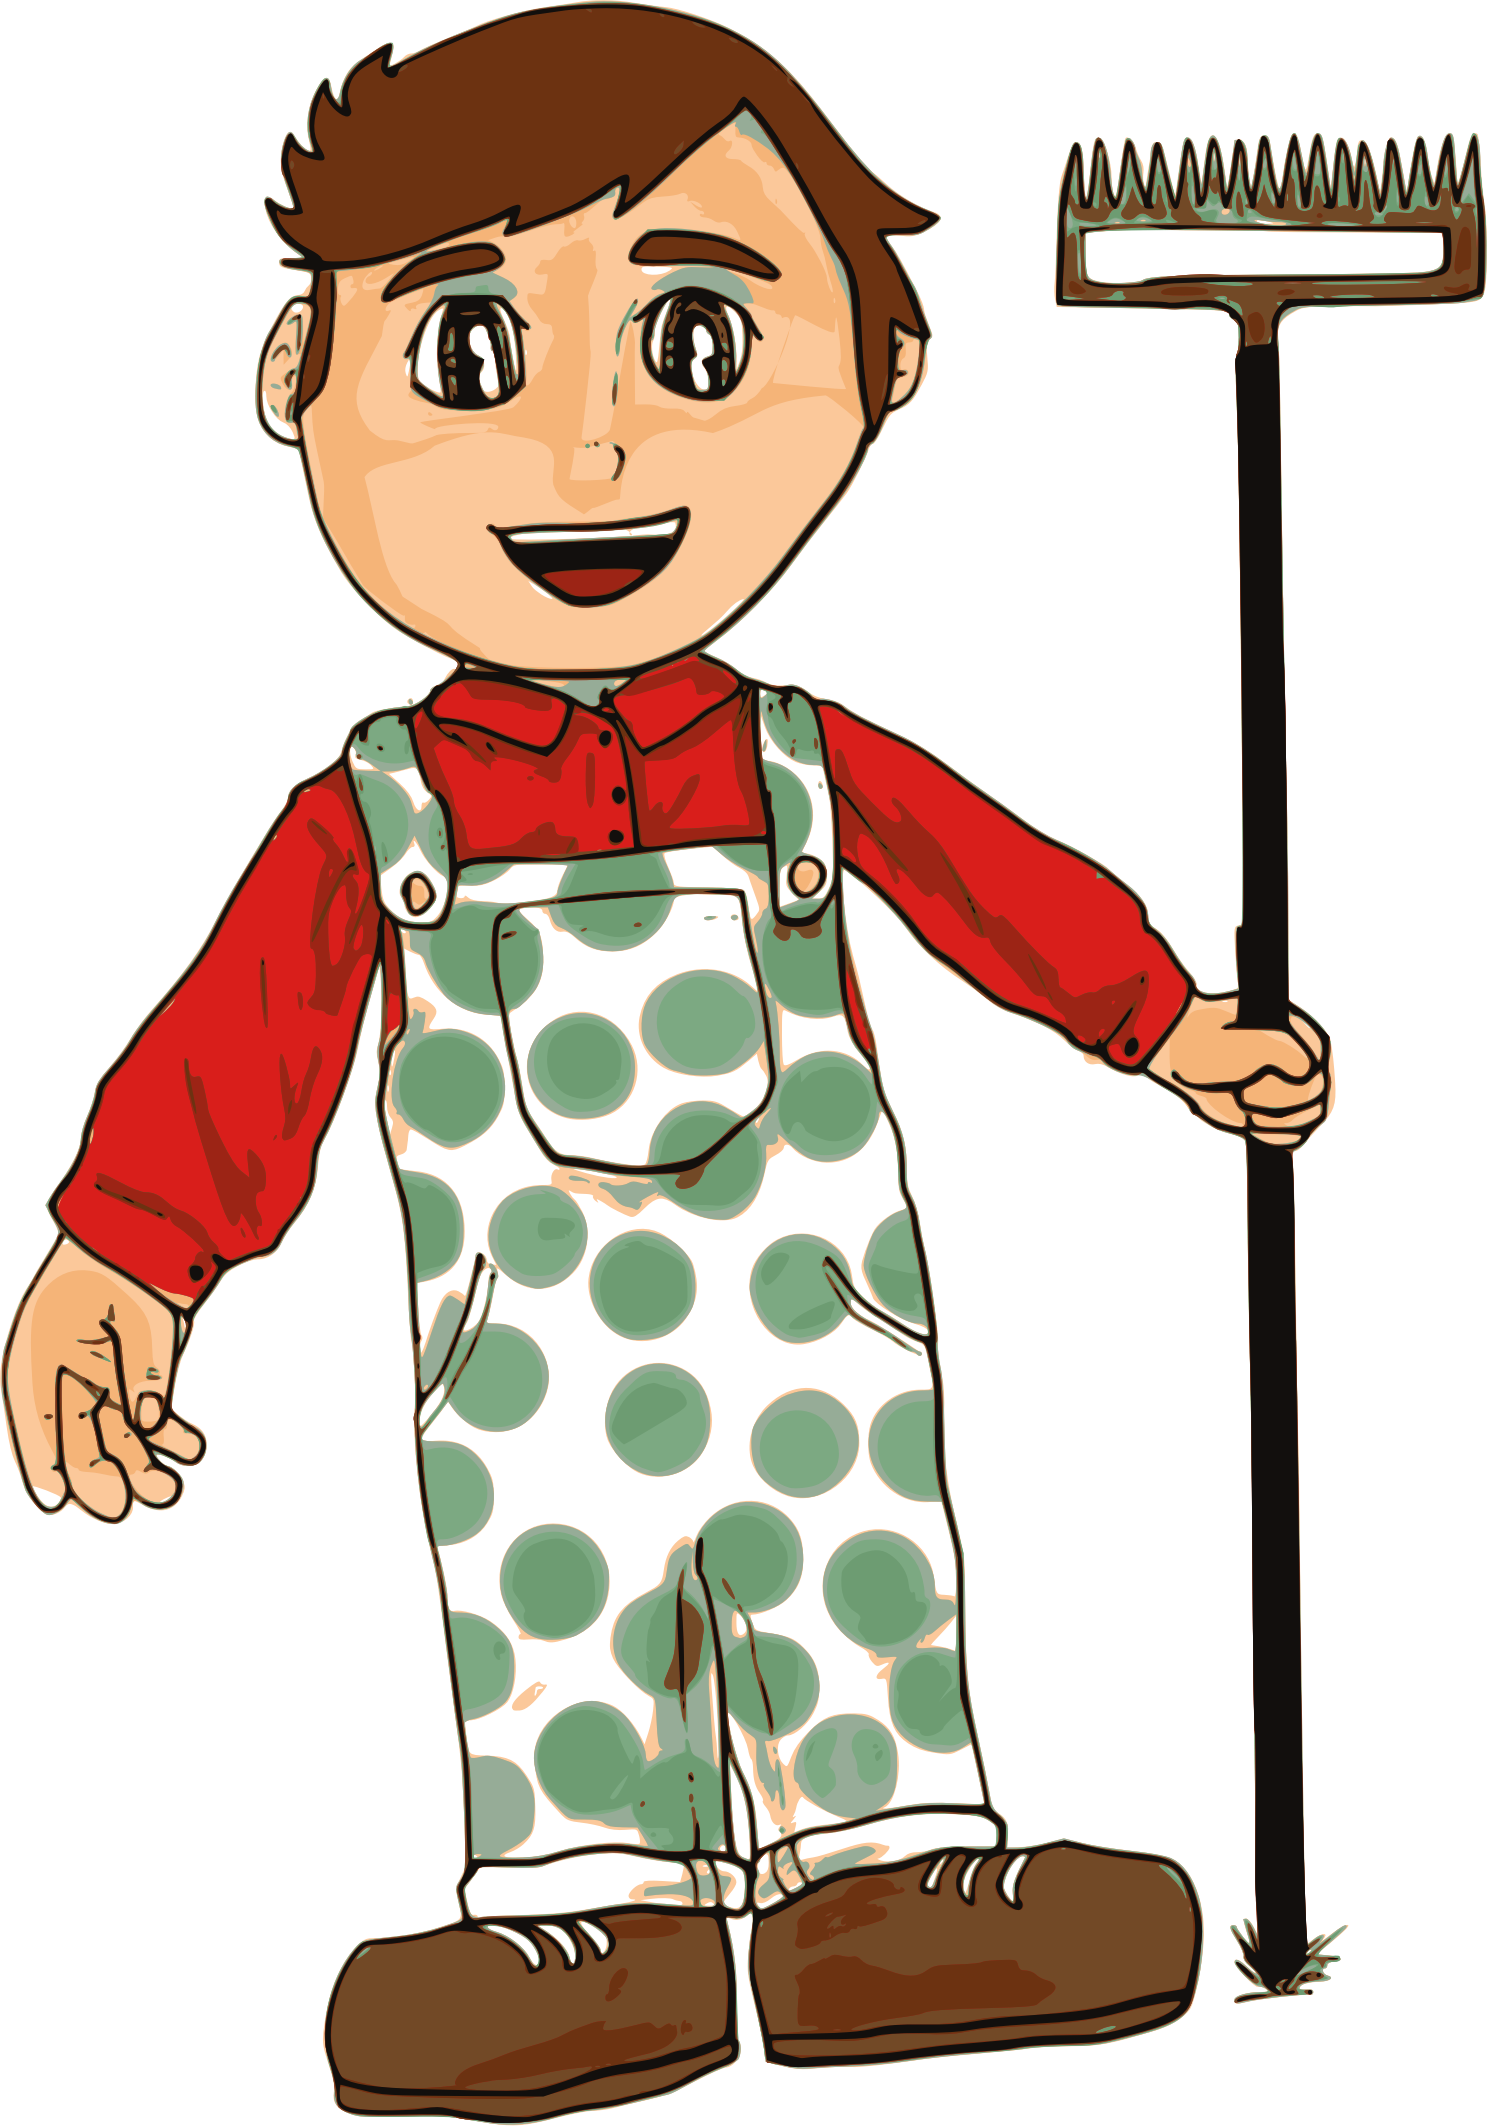 transparent download Helper clipart farmer. Boy big image png.